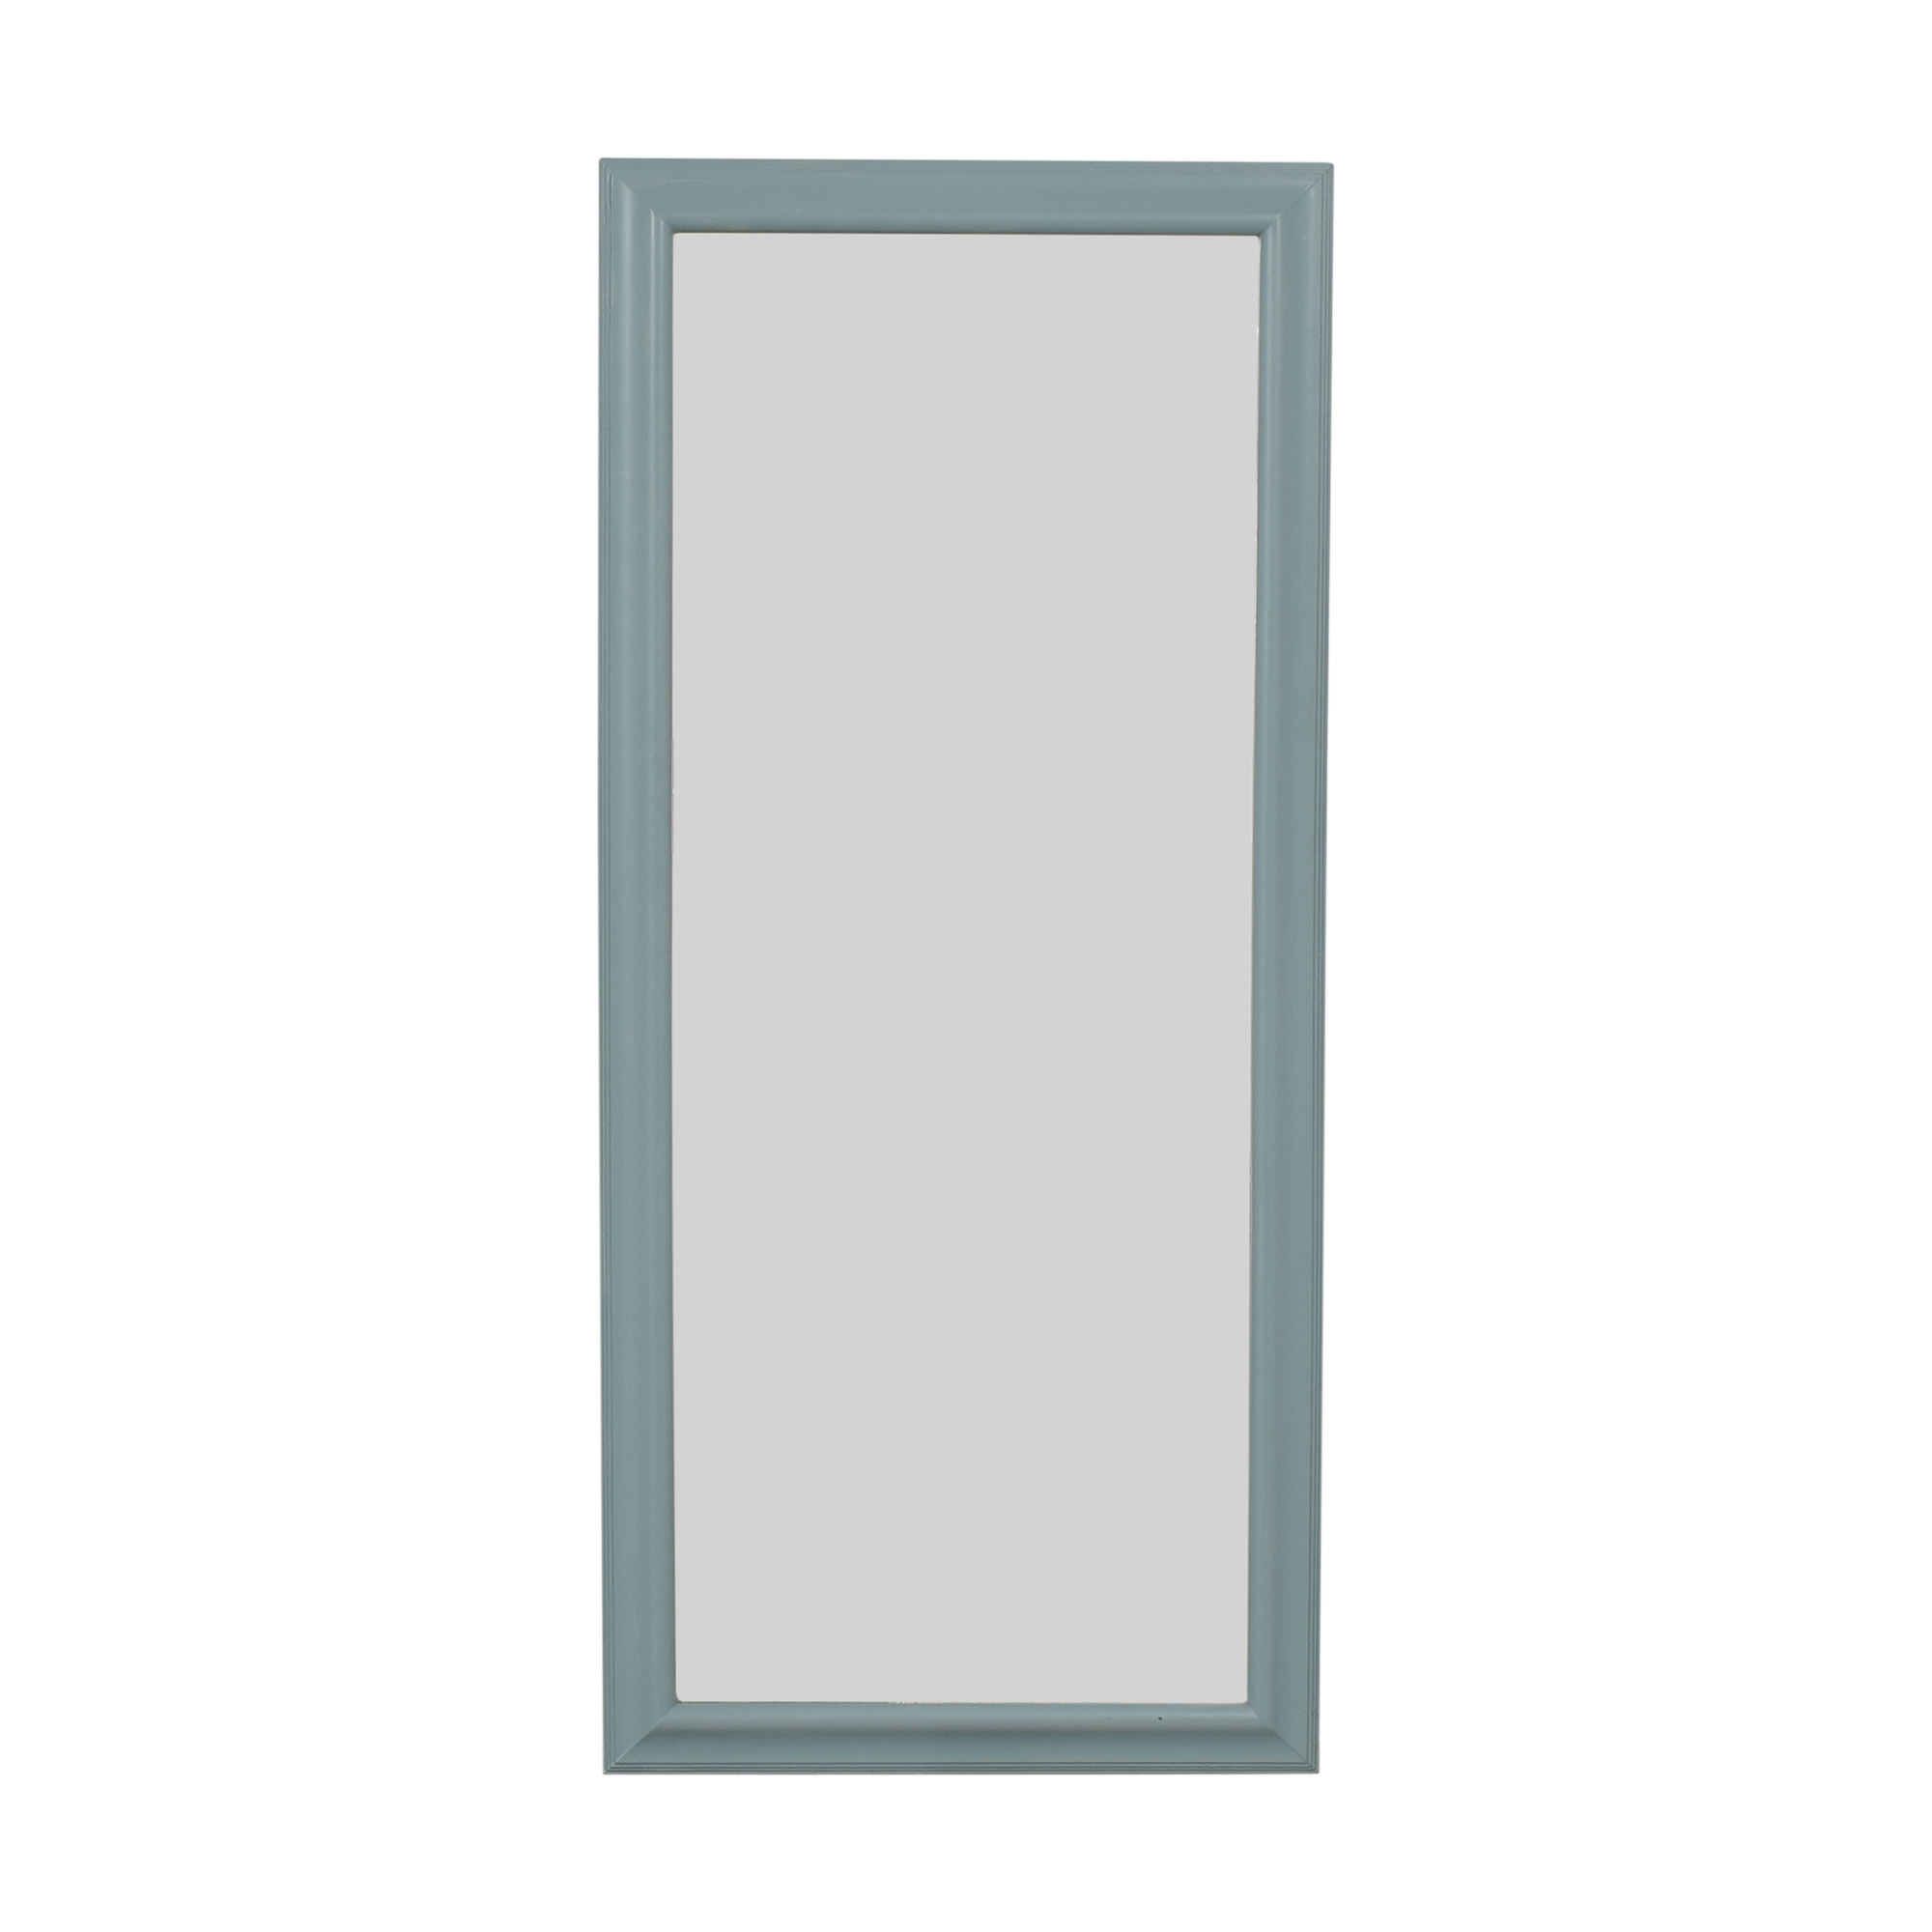 Bombay Company Bombay Company Leaning Floor Mirror for sale